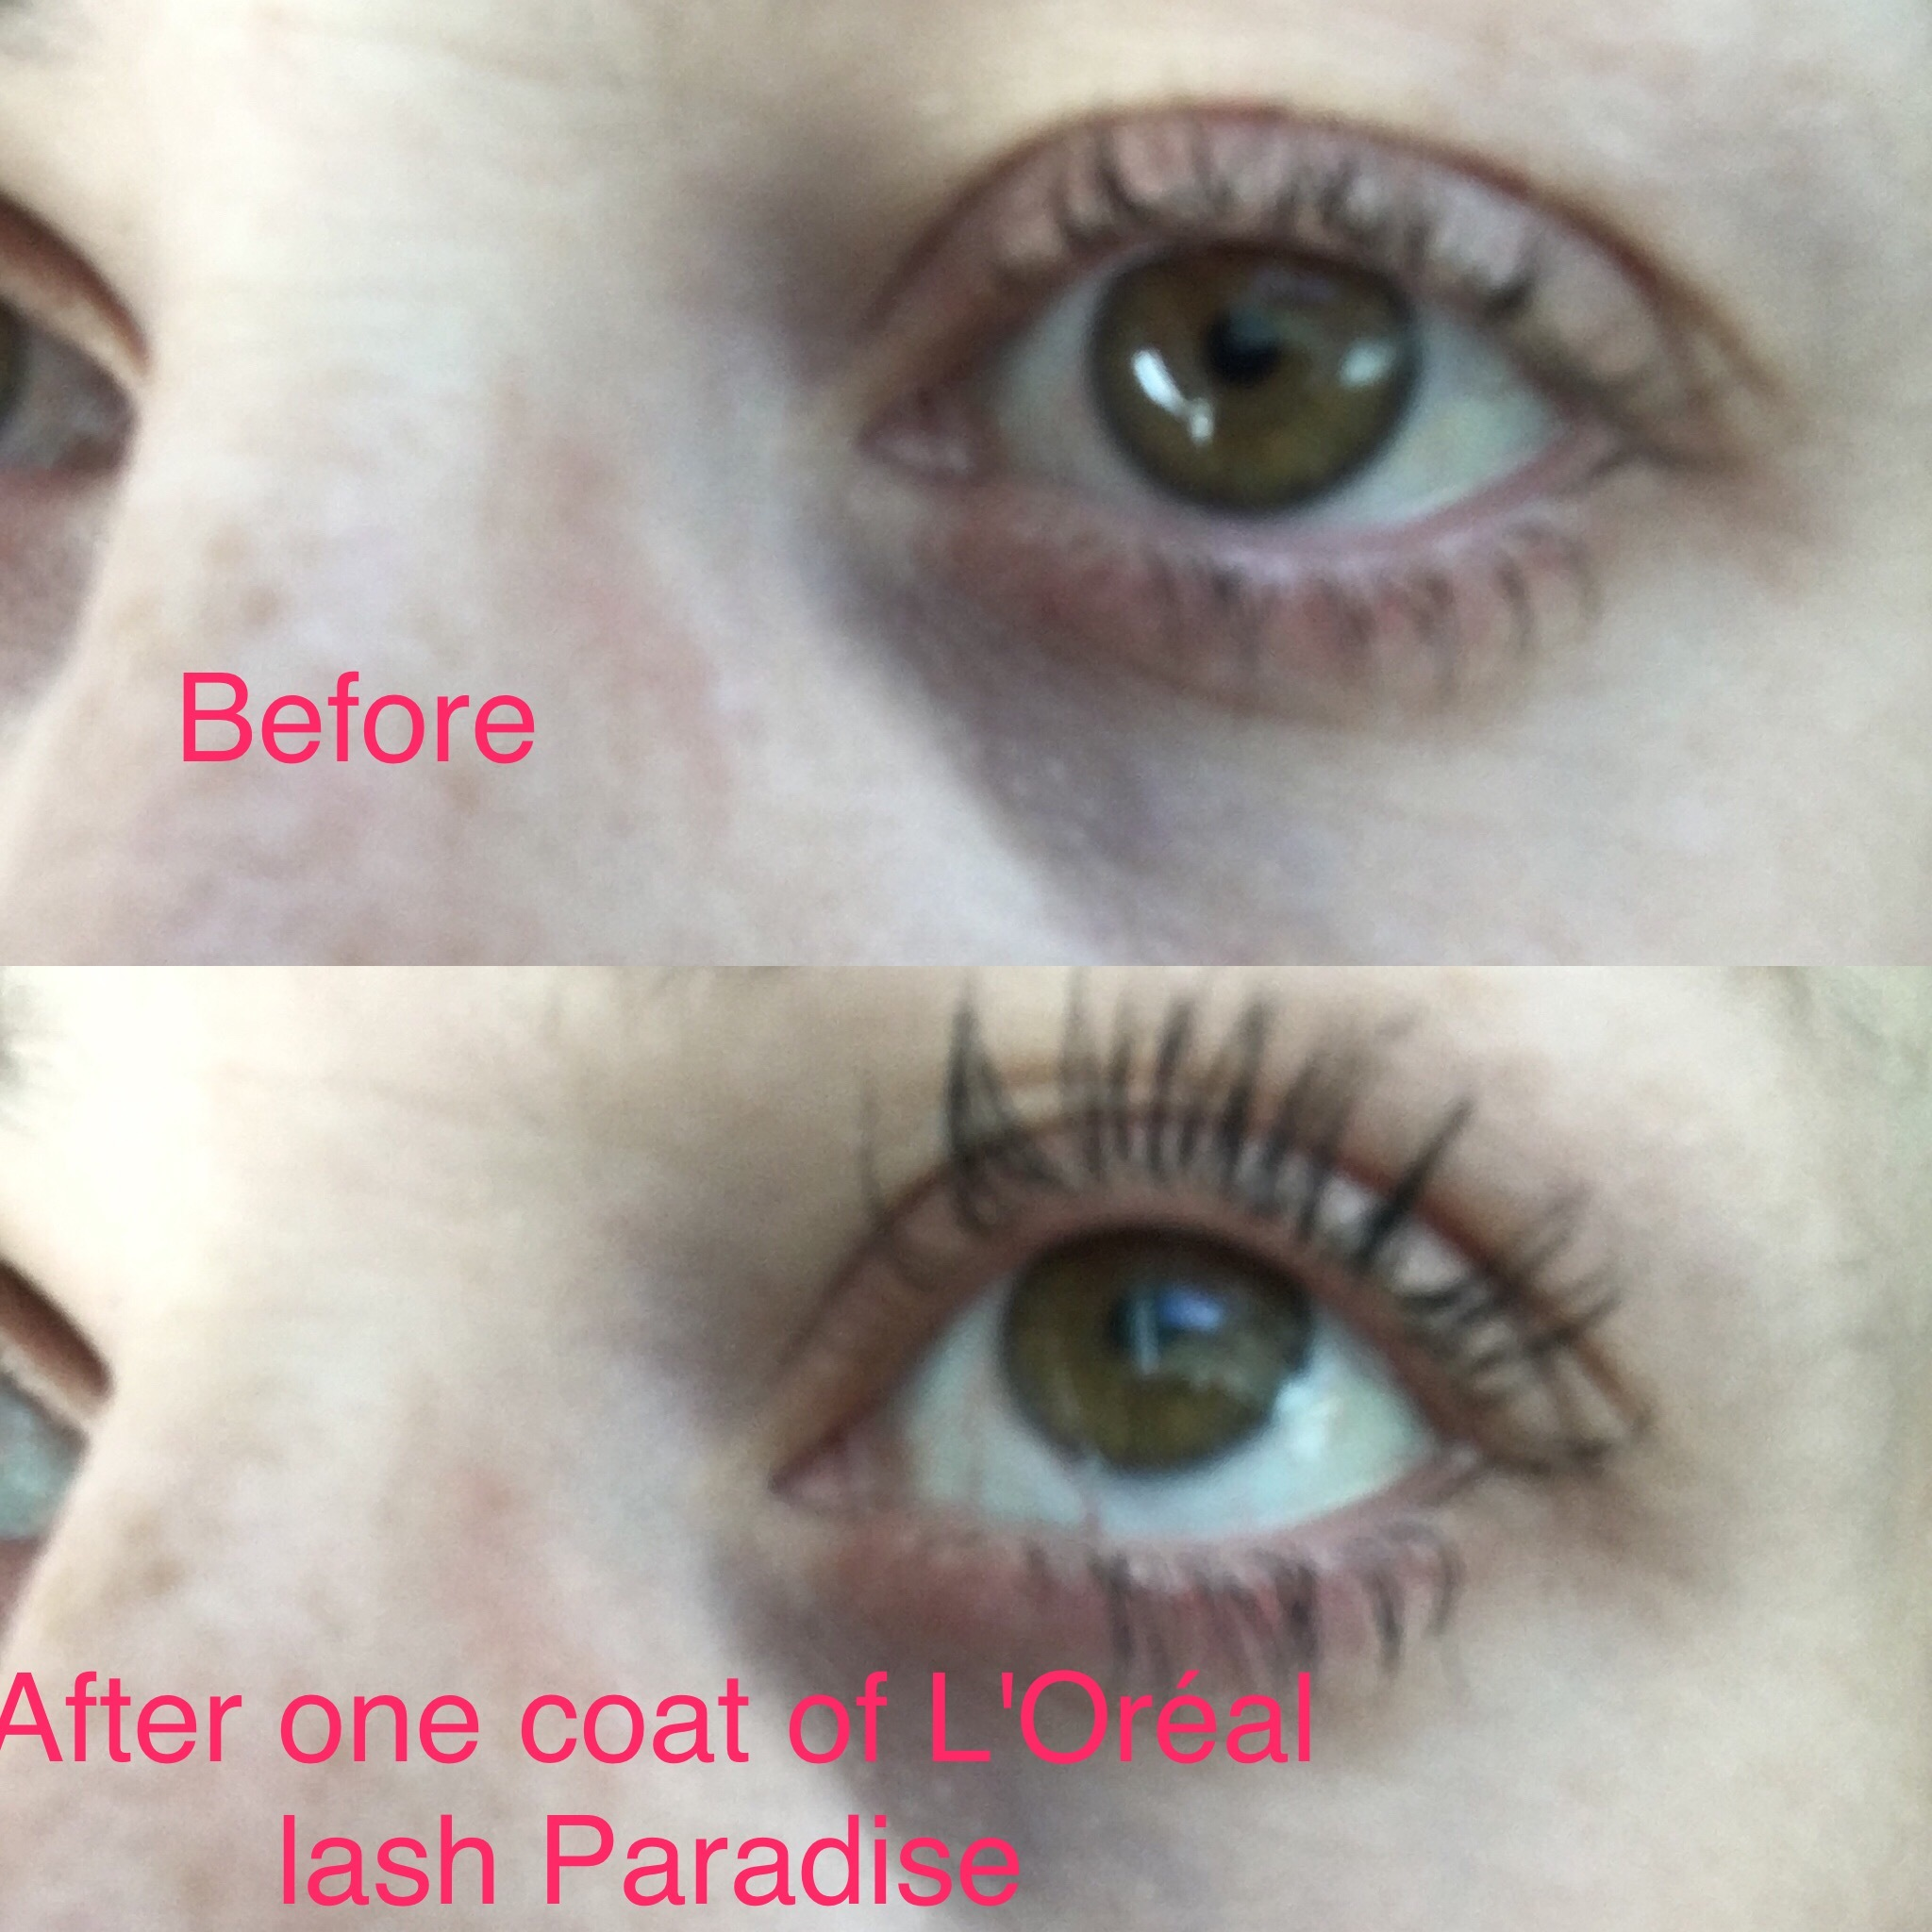 L'Oreal Voluminous Lash Paradise Mascara Image Gallery. 206 reviews